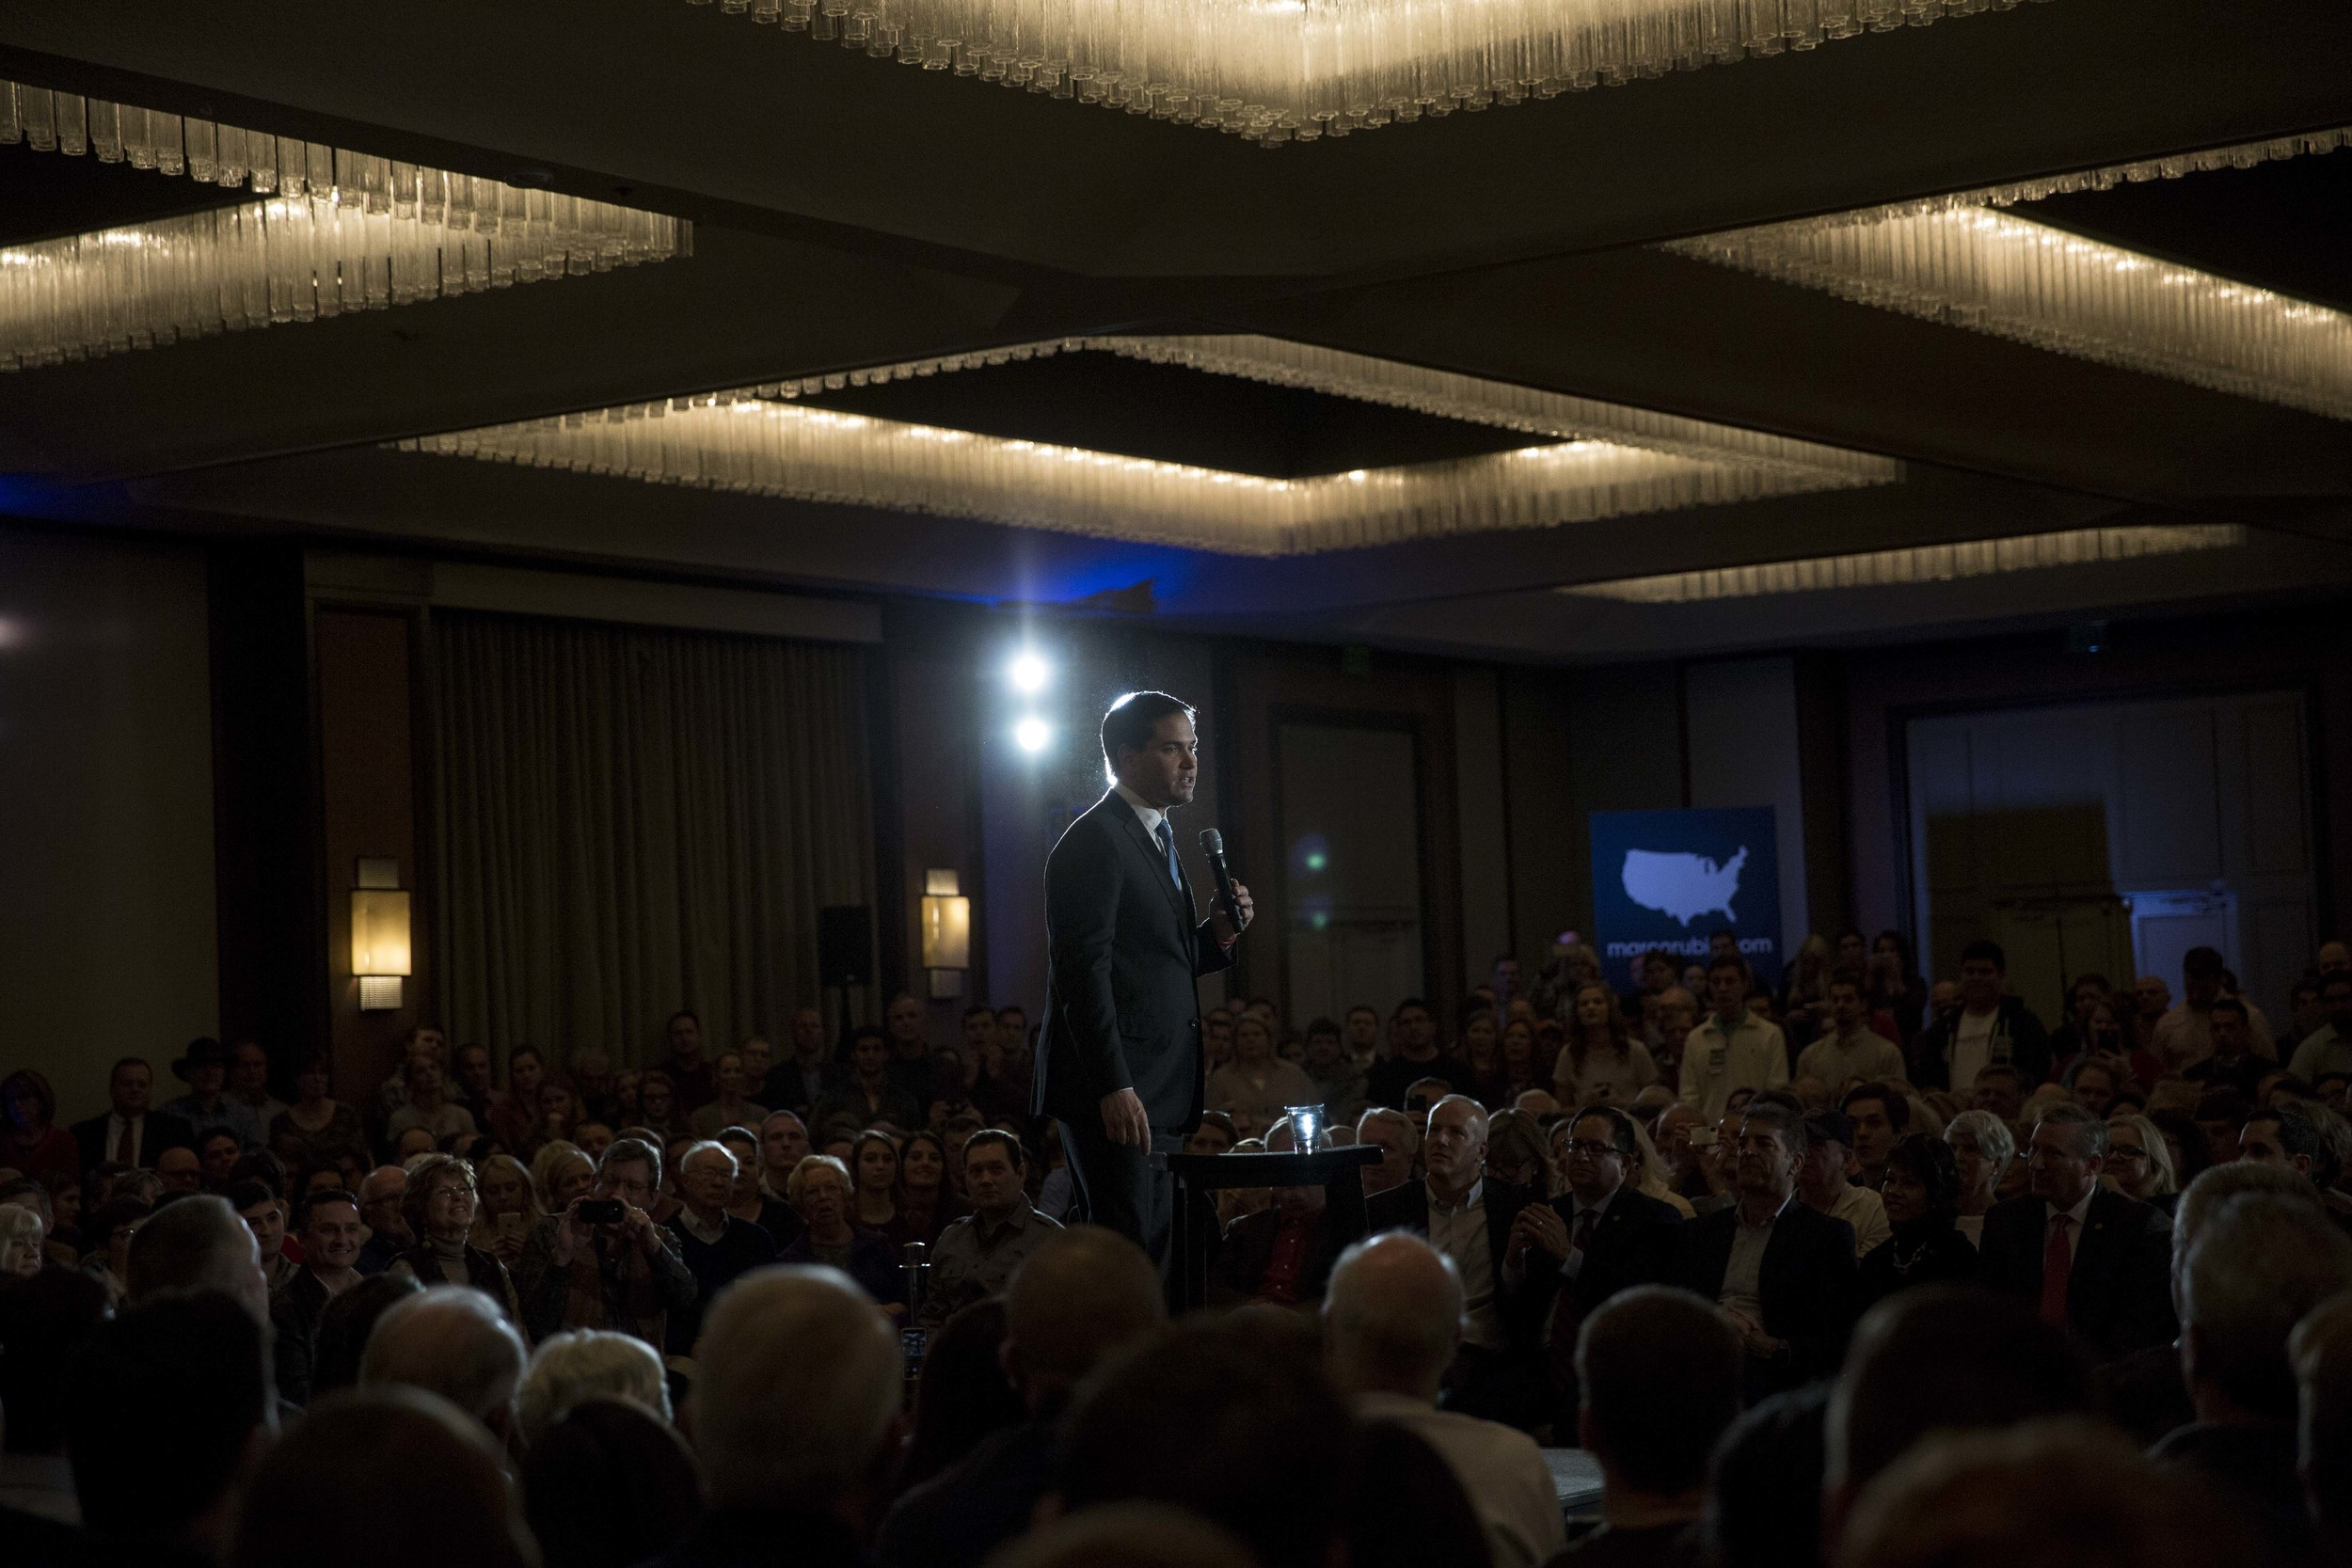 Marco Rubio speaking in Dallas, TX.